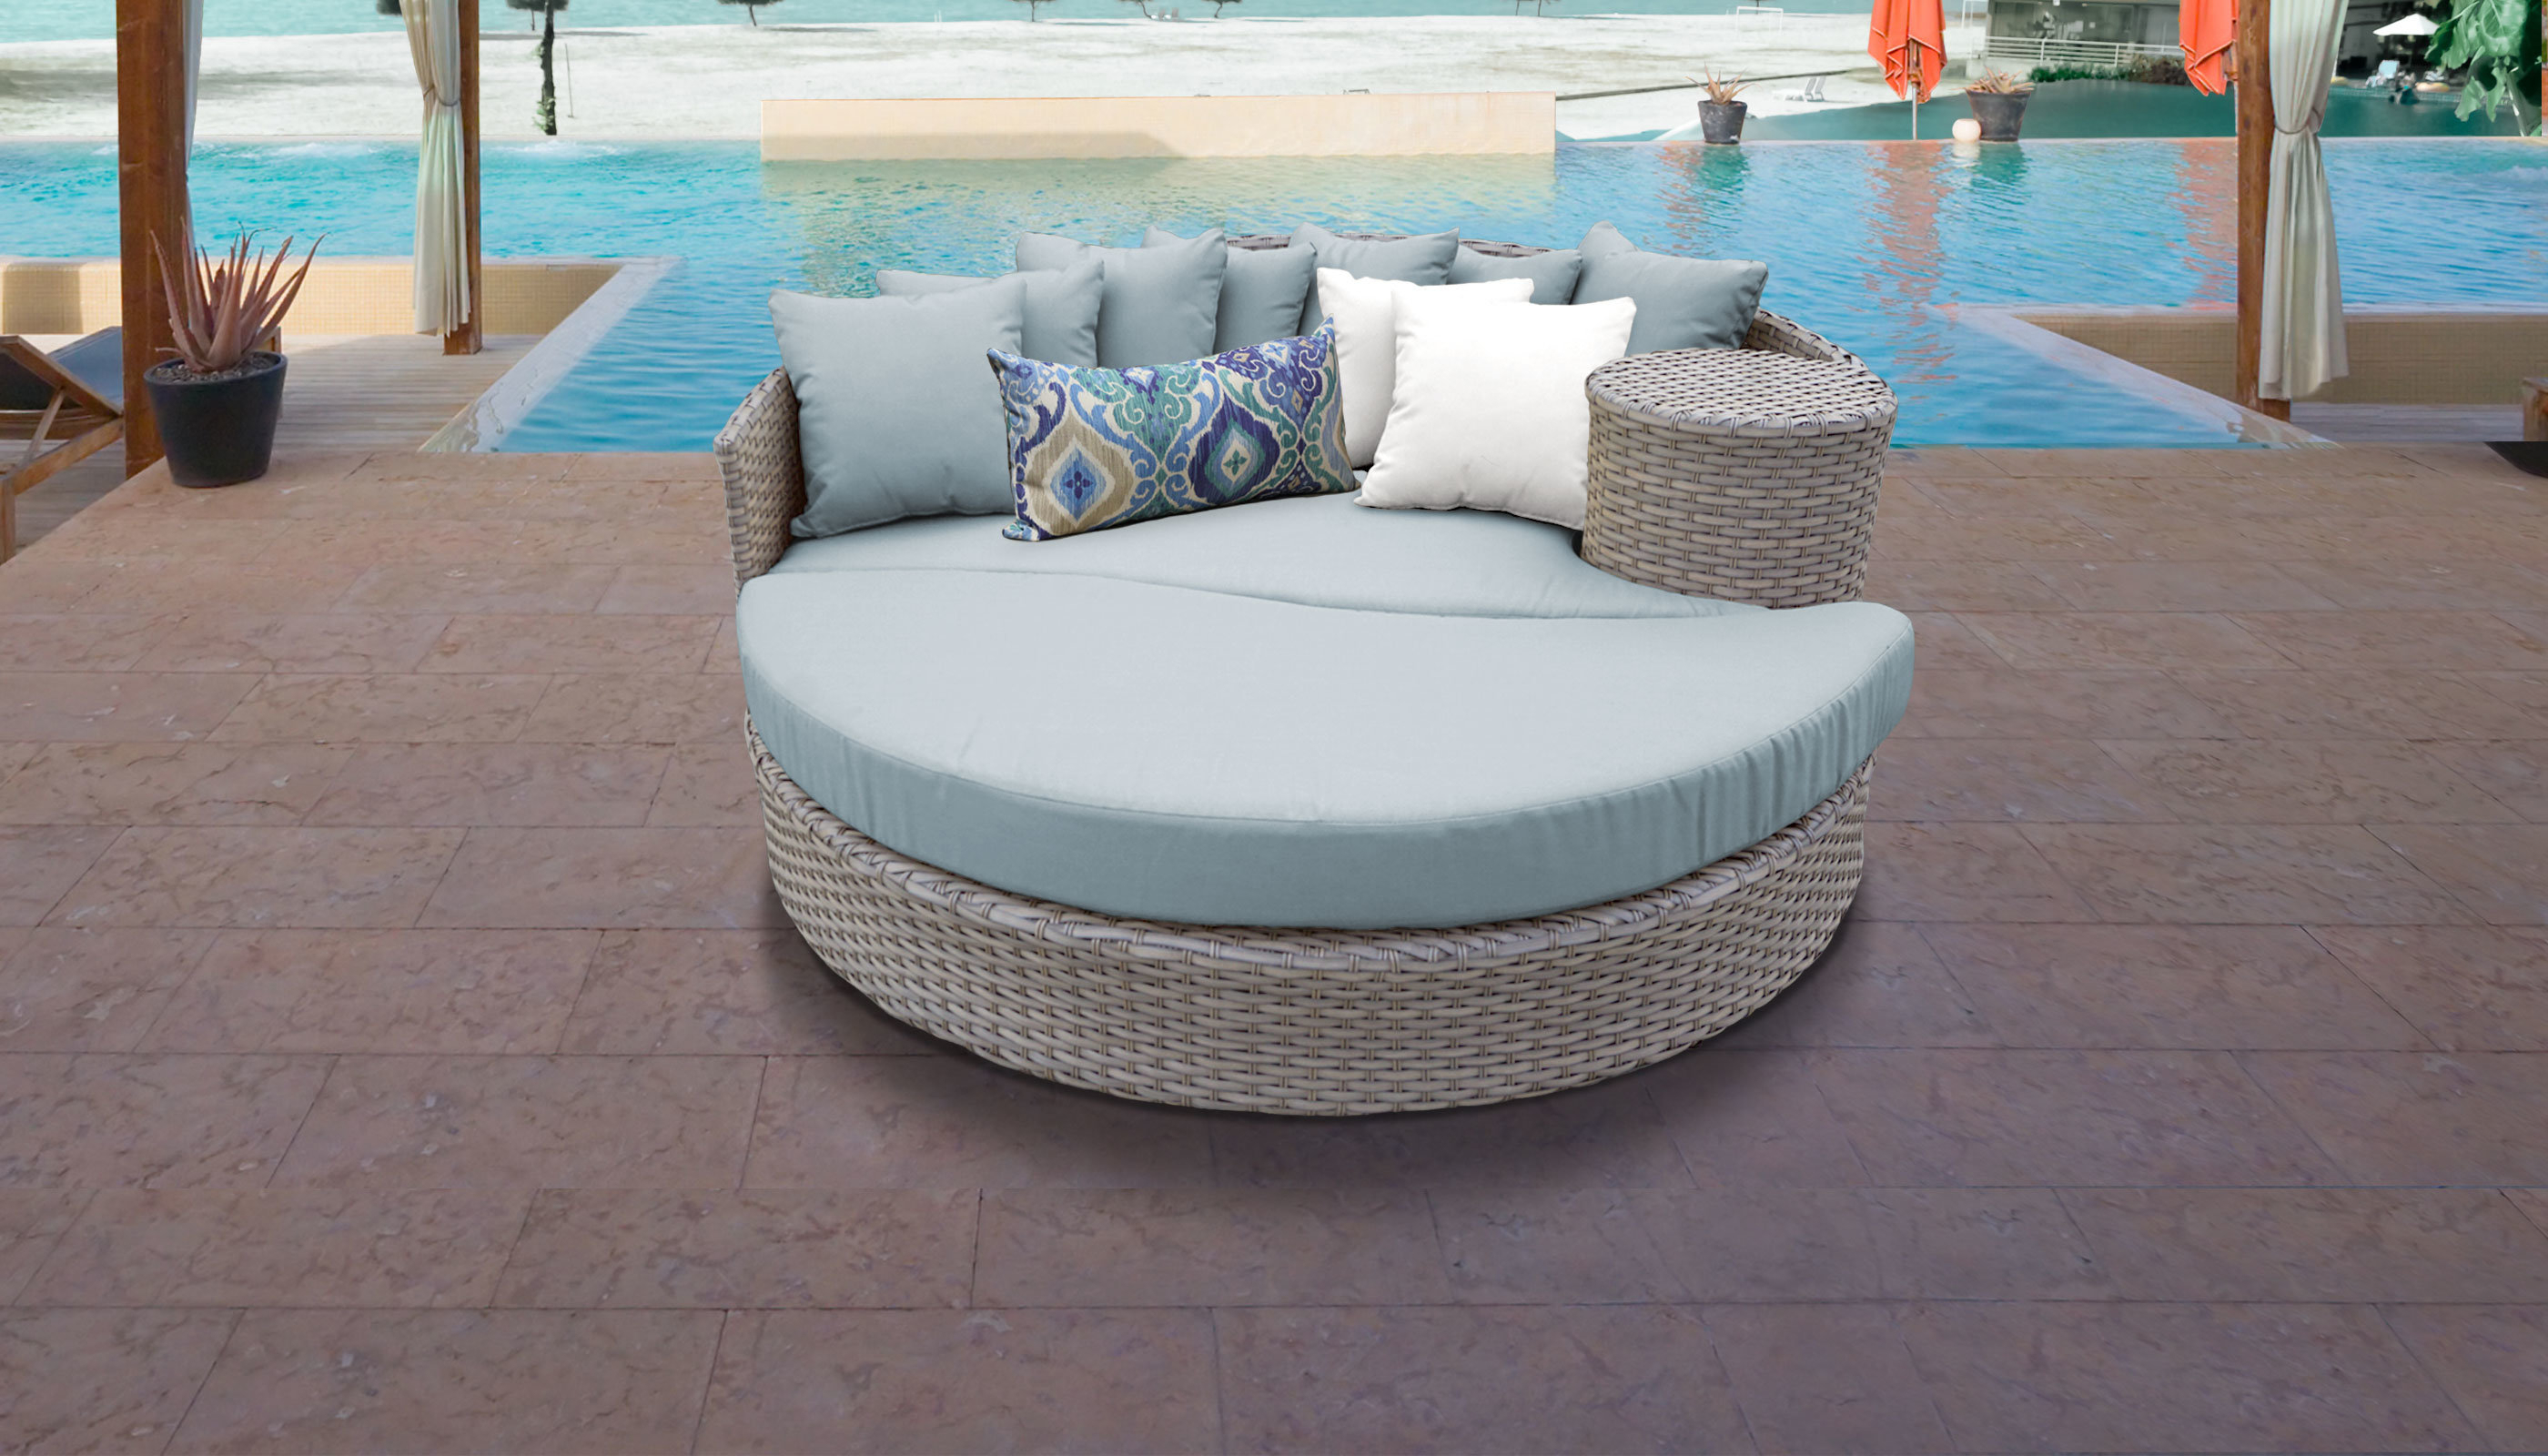 Falmouth Patio Daybeds With Cushions Pertaining To Preferred Rochford Circular Patio Daybed With Cushions (View 9 of 20)